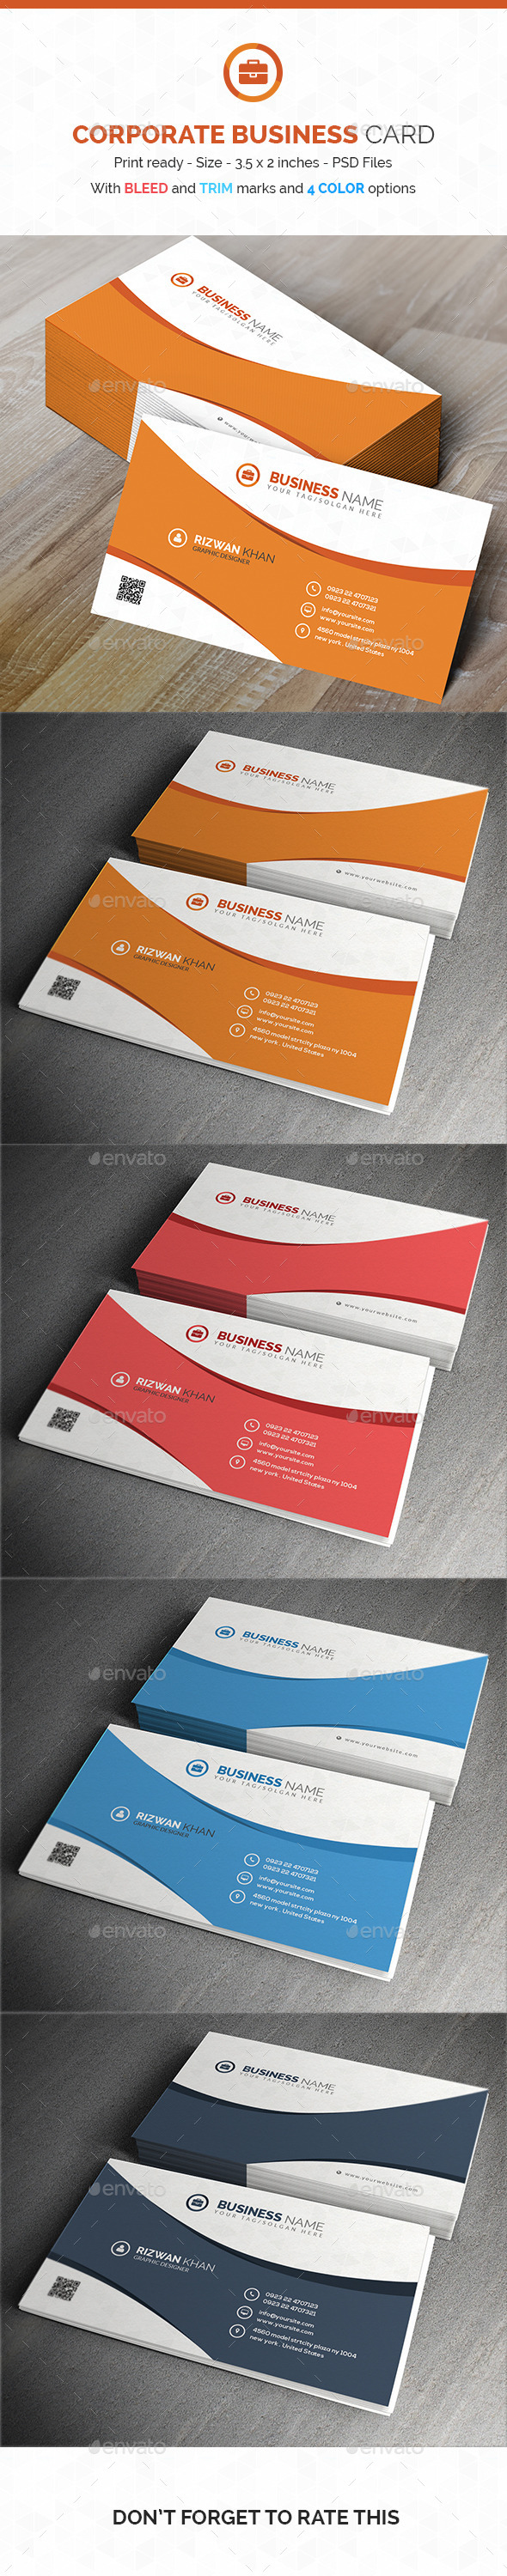 Corporate Business Card PSD Template - Corporate Business Cards